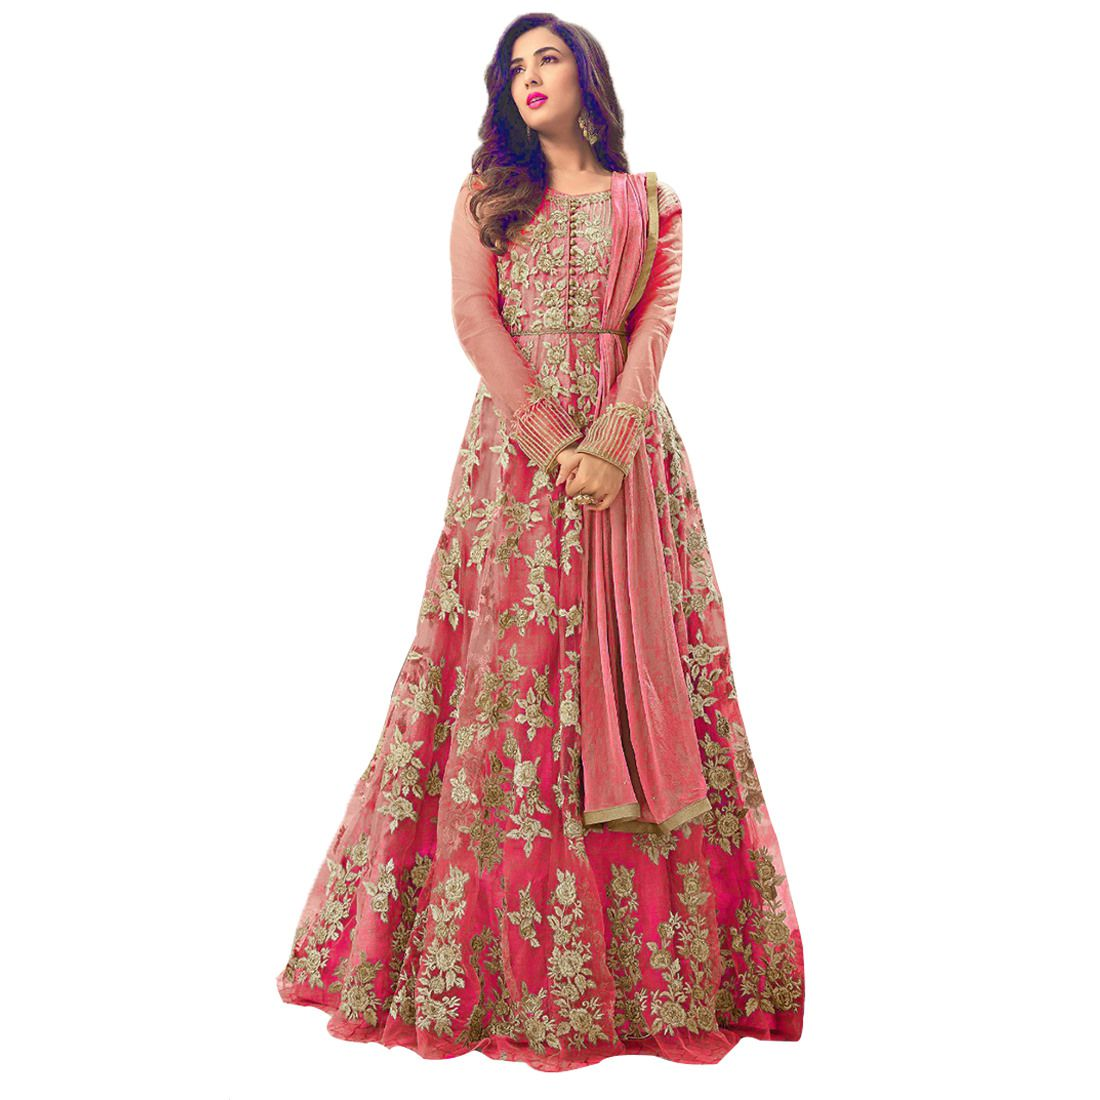 08aeefaf60 KAPANKU Red and Beige net Anarkali Gown Semi-Stitched Suit - Buy KAPANKU Red  and Beige net Anarkali Gown Semi-Stitched Suit Online at Best Prices in  India ...